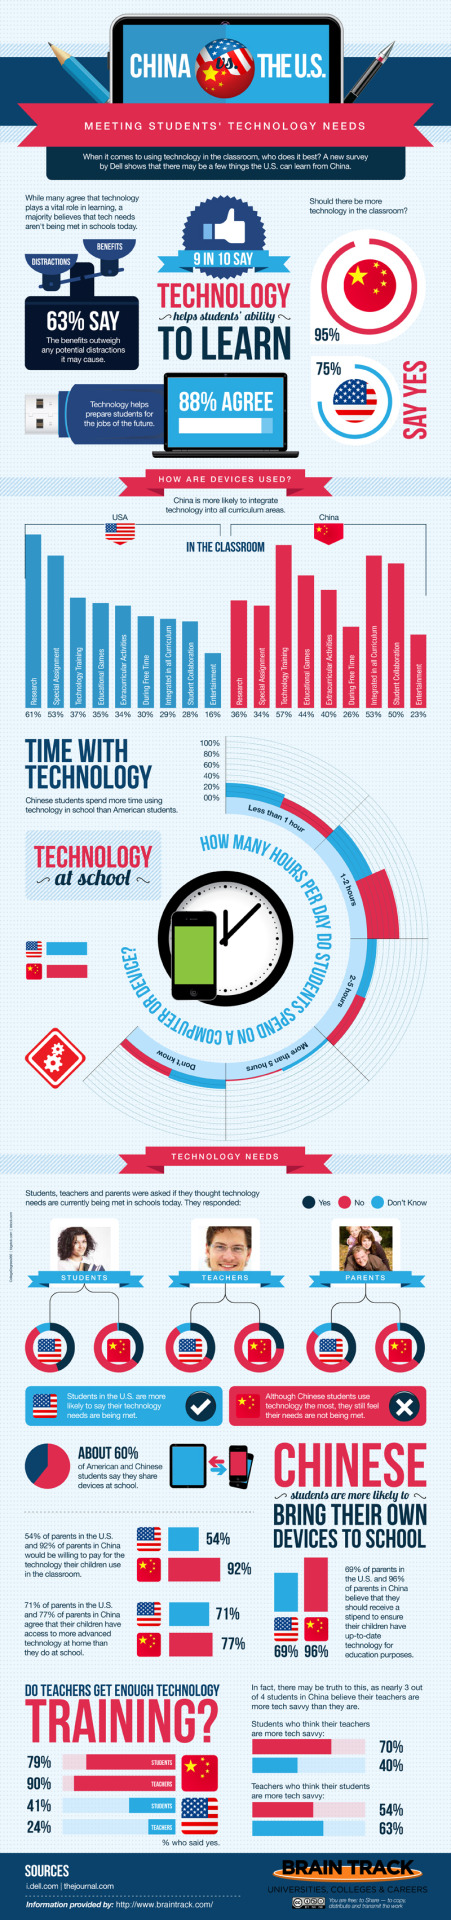 futurist-foresight:  An interesting comparison of tech integration in the education systems of China and the USA.